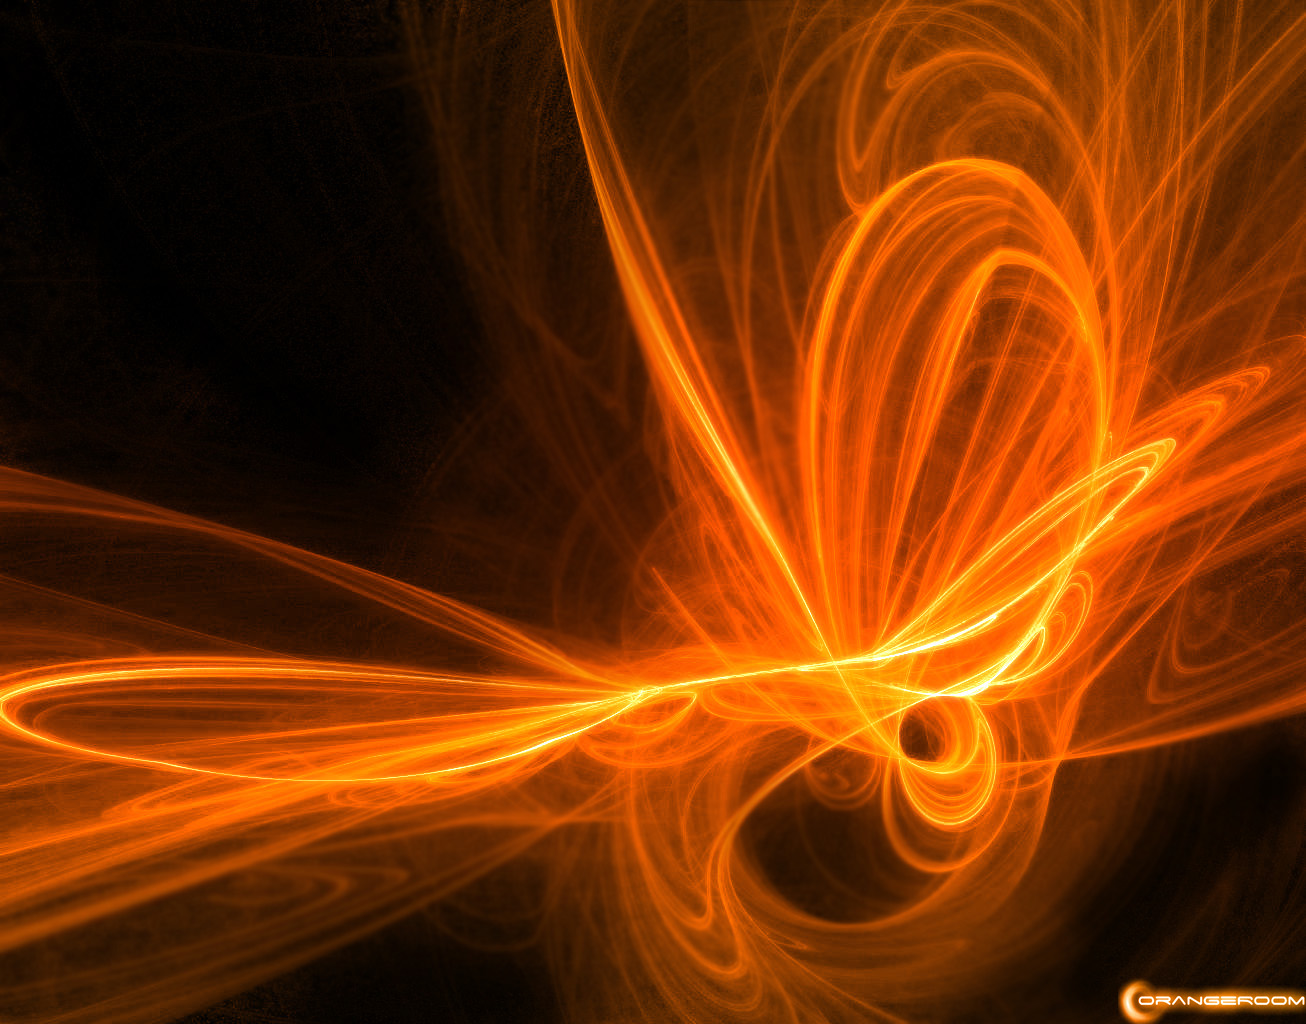 Orange images Orange Wallpaper HD wallpaper and background photos 1306x1024